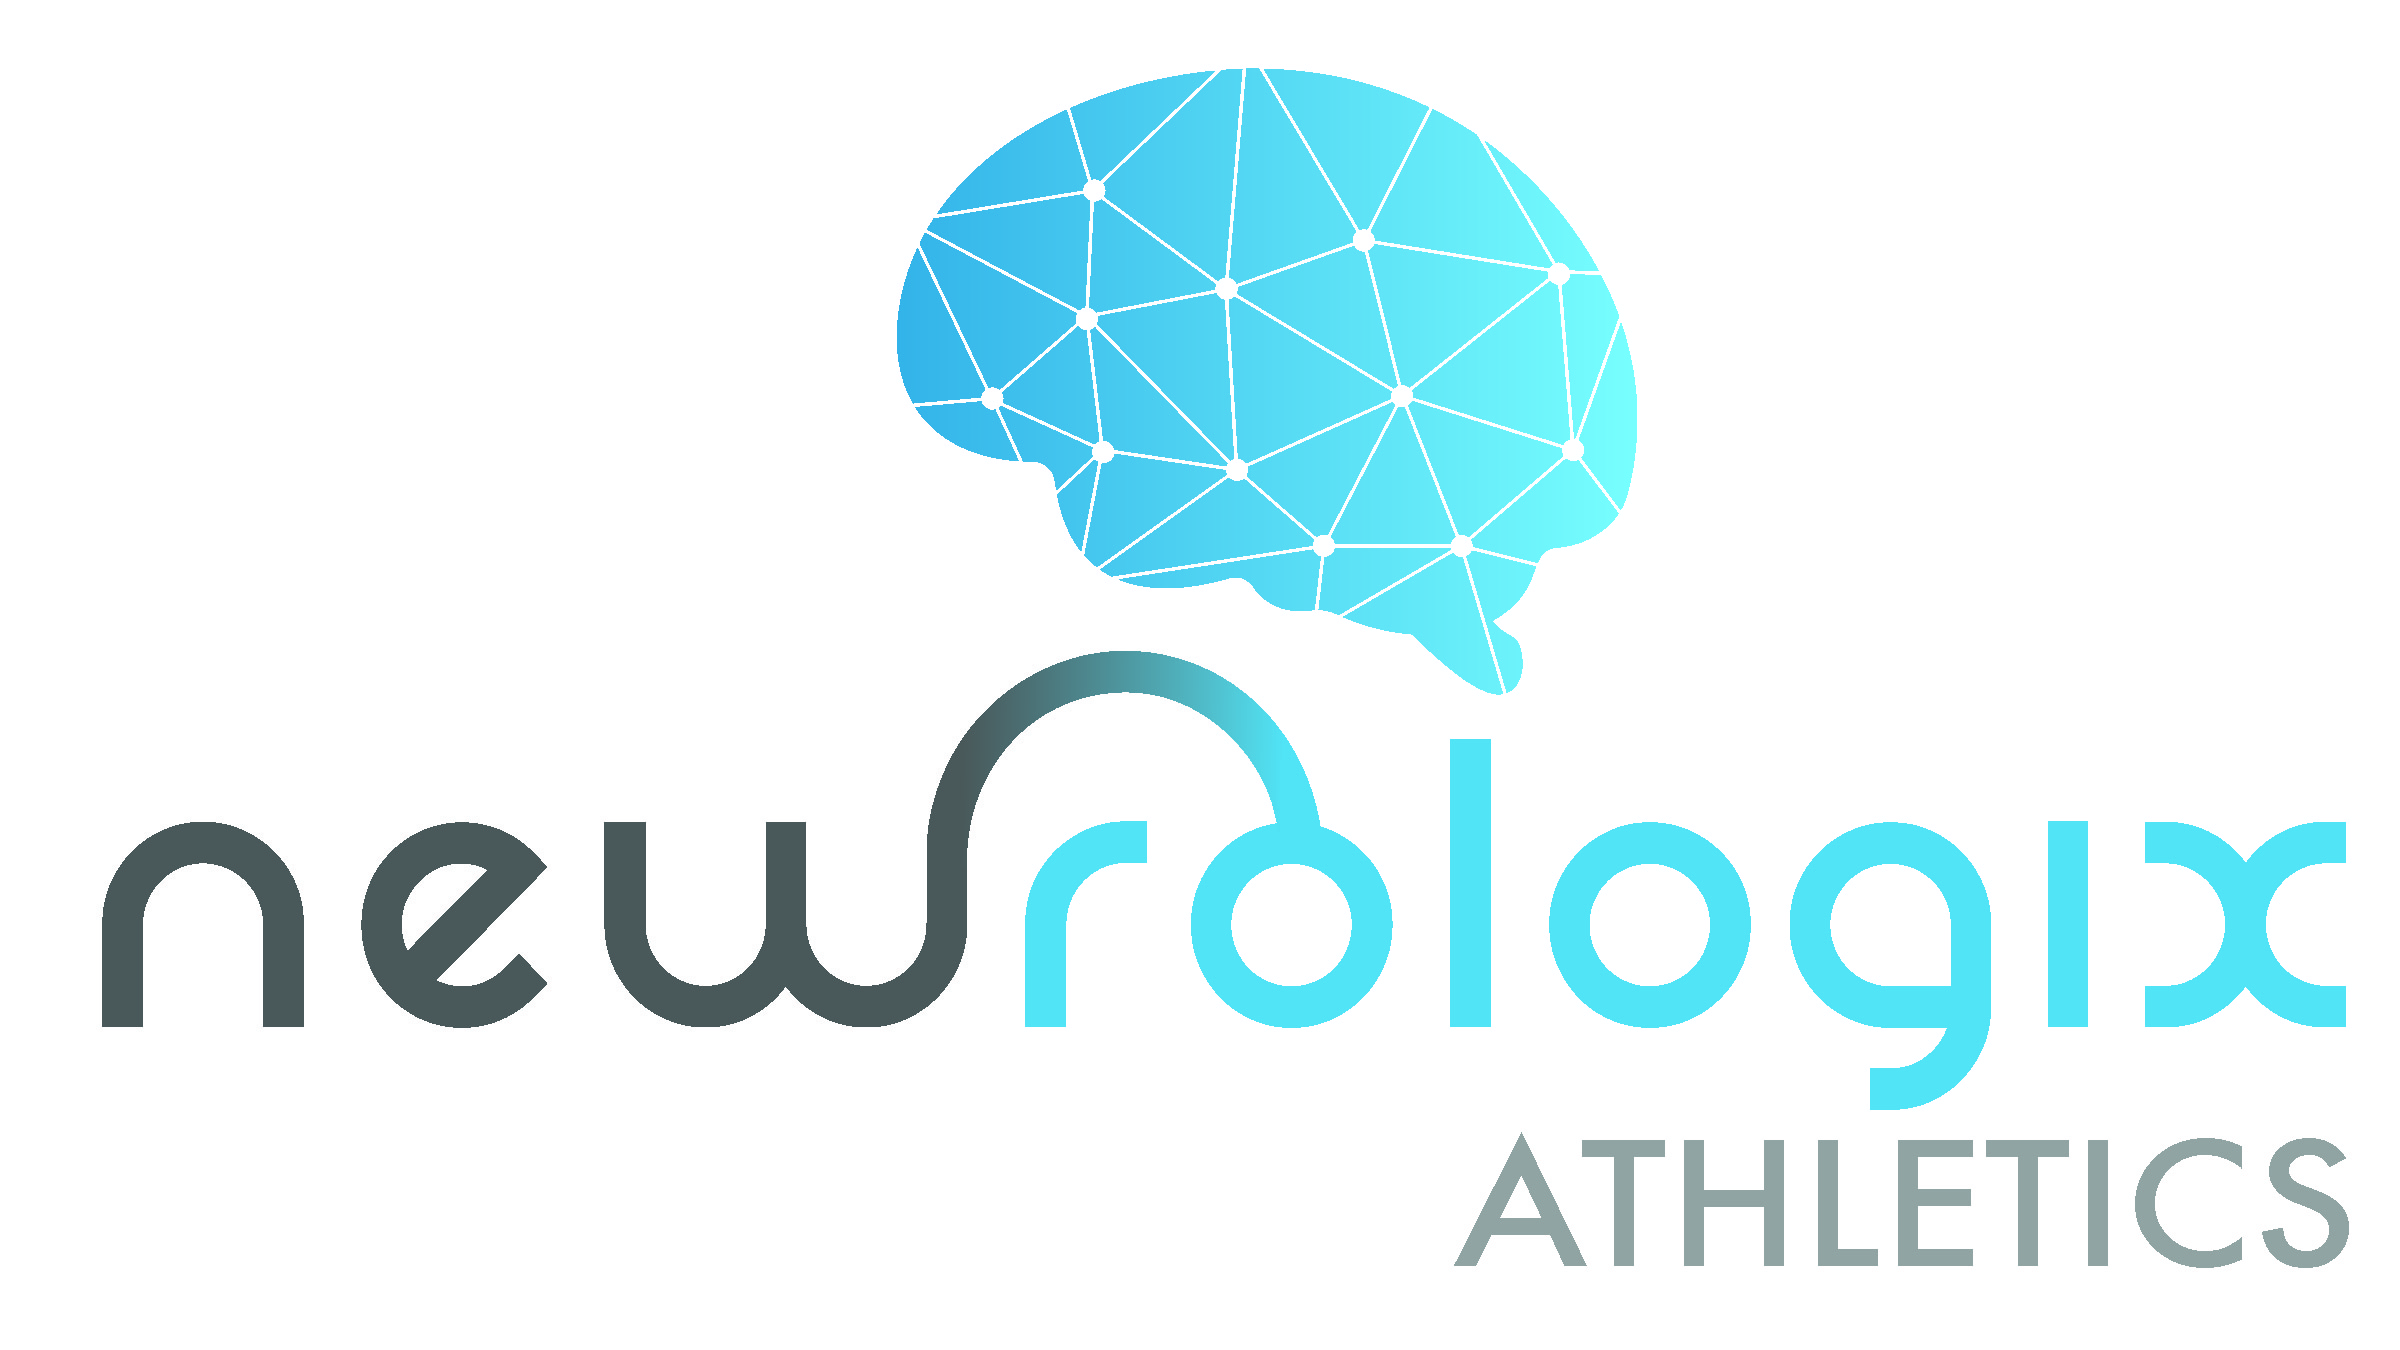 newrologix athletics - Sports related performance factors in the brain require extremely profound states of brain control and can impact overall performance in a wide variety of athletics and cognitive efficiency.